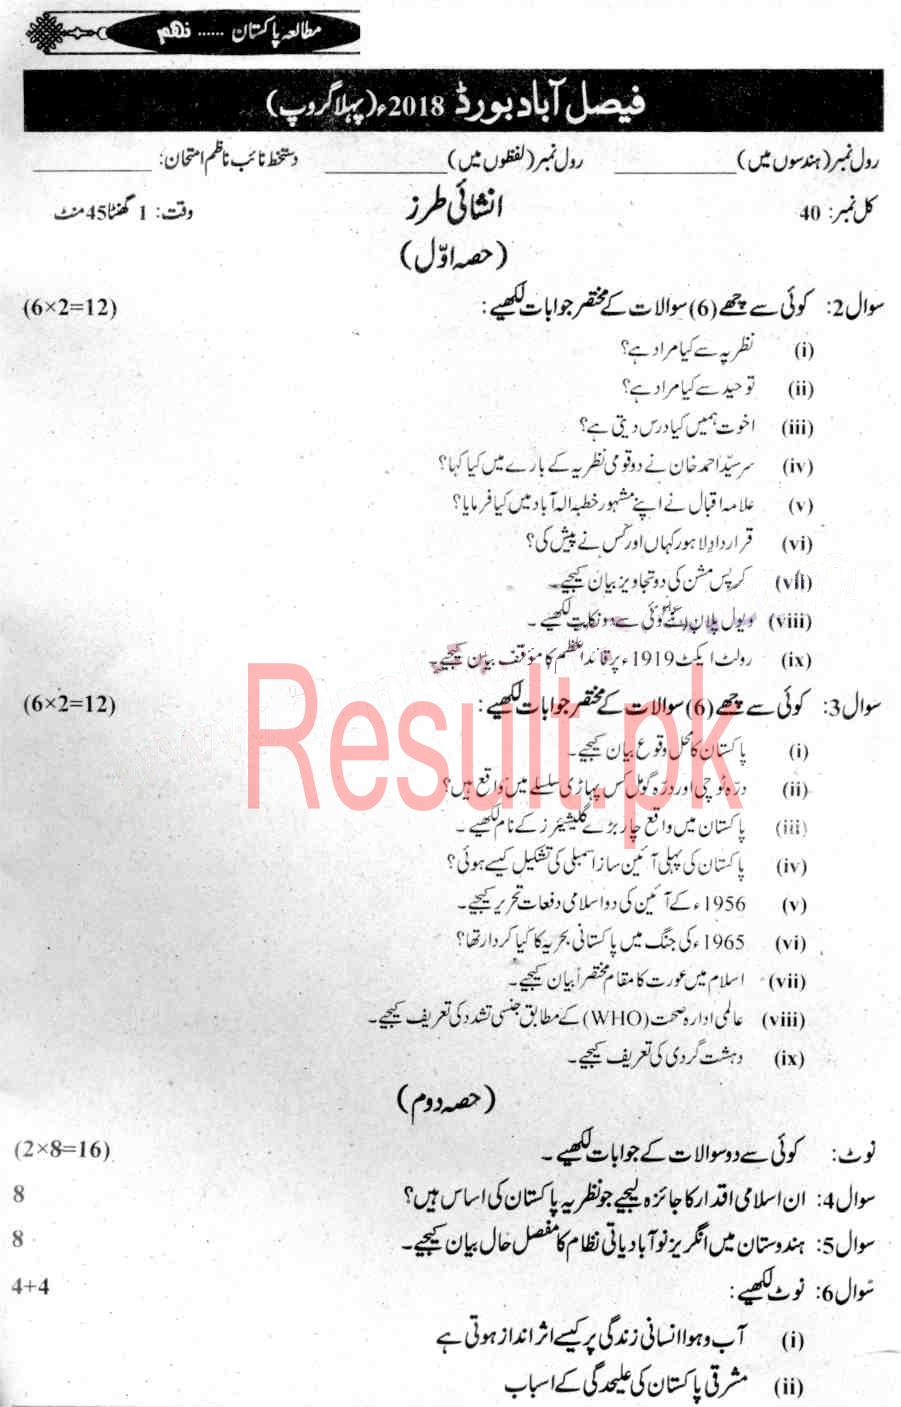 Fbise result 2018 Ssc part 2 by name class 10